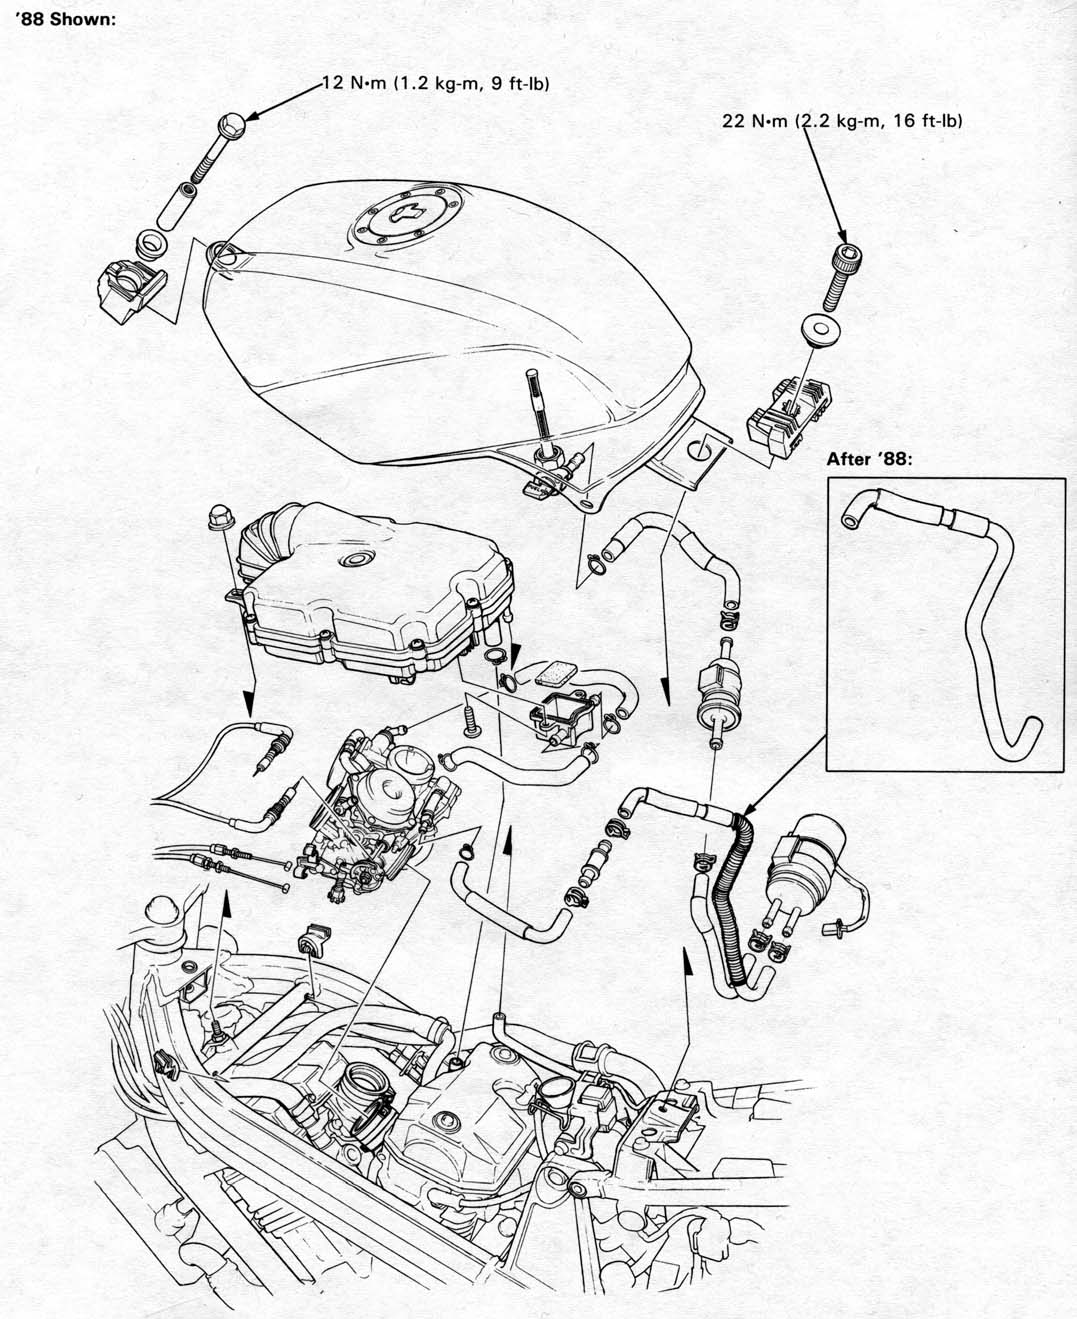 roadranger transmission wiring diagram with Briggs And Stratton Raptor Engine on General Electric Breaker Panels as well 1950 Chevrolet V8 Wiring Diagram Html furthermore Fuller Transmission Diagram further Fuller 13 Speed Air Line Diagram as well 1940 Ford Vacuum Pump Diagram.